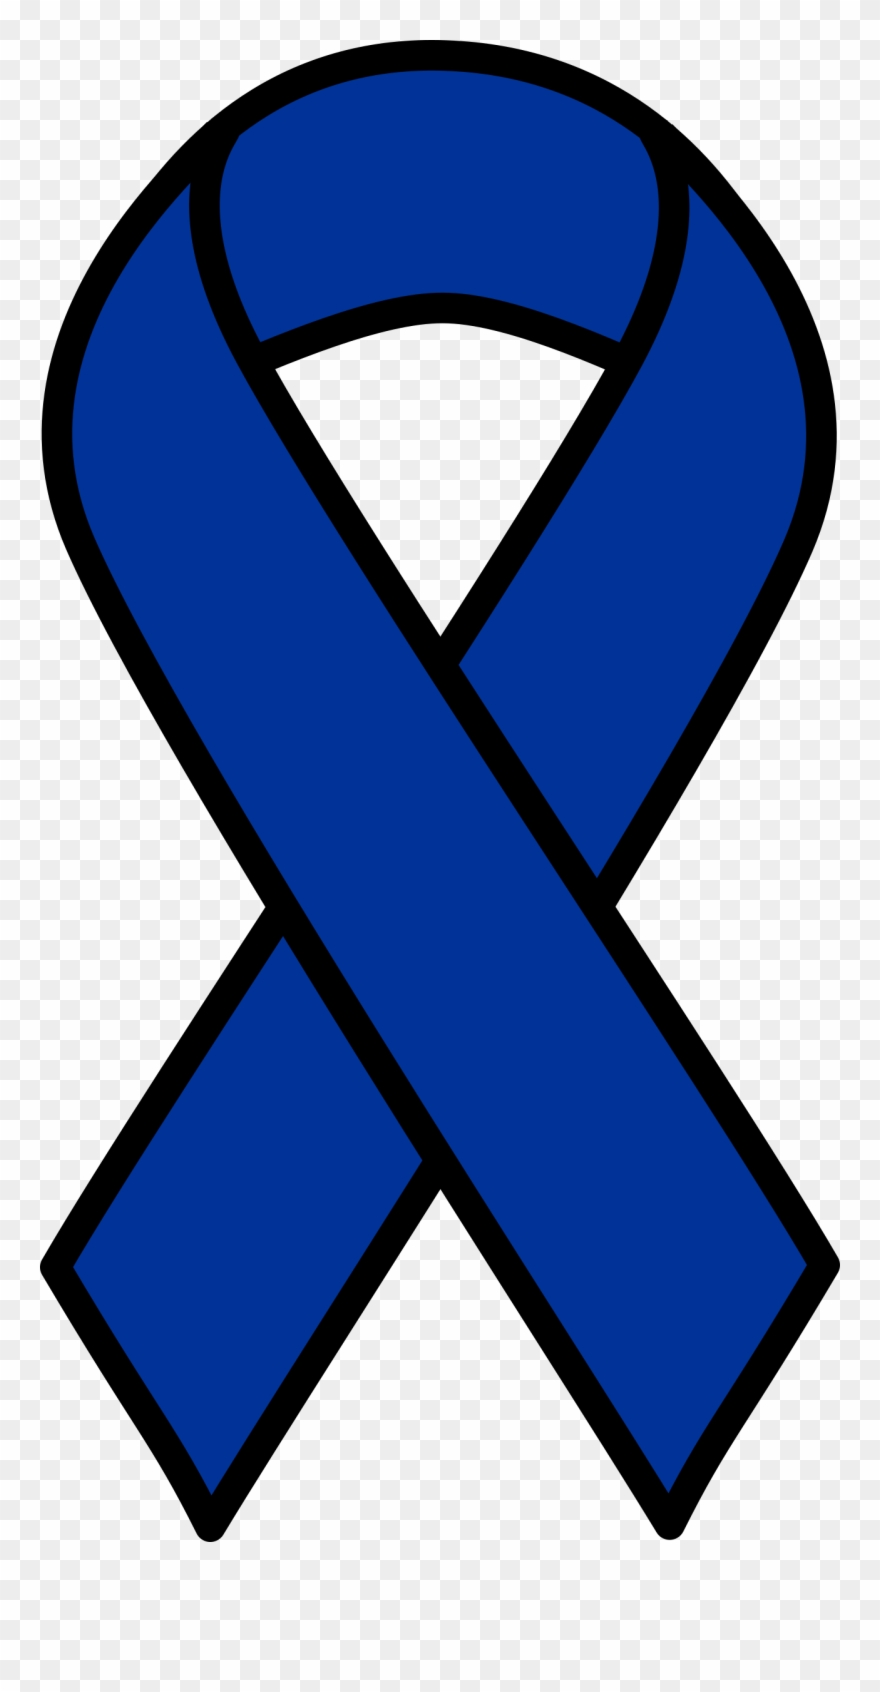 Big Image Colon Cancer Ribbon Svg Clipart 251392 Pinclipart